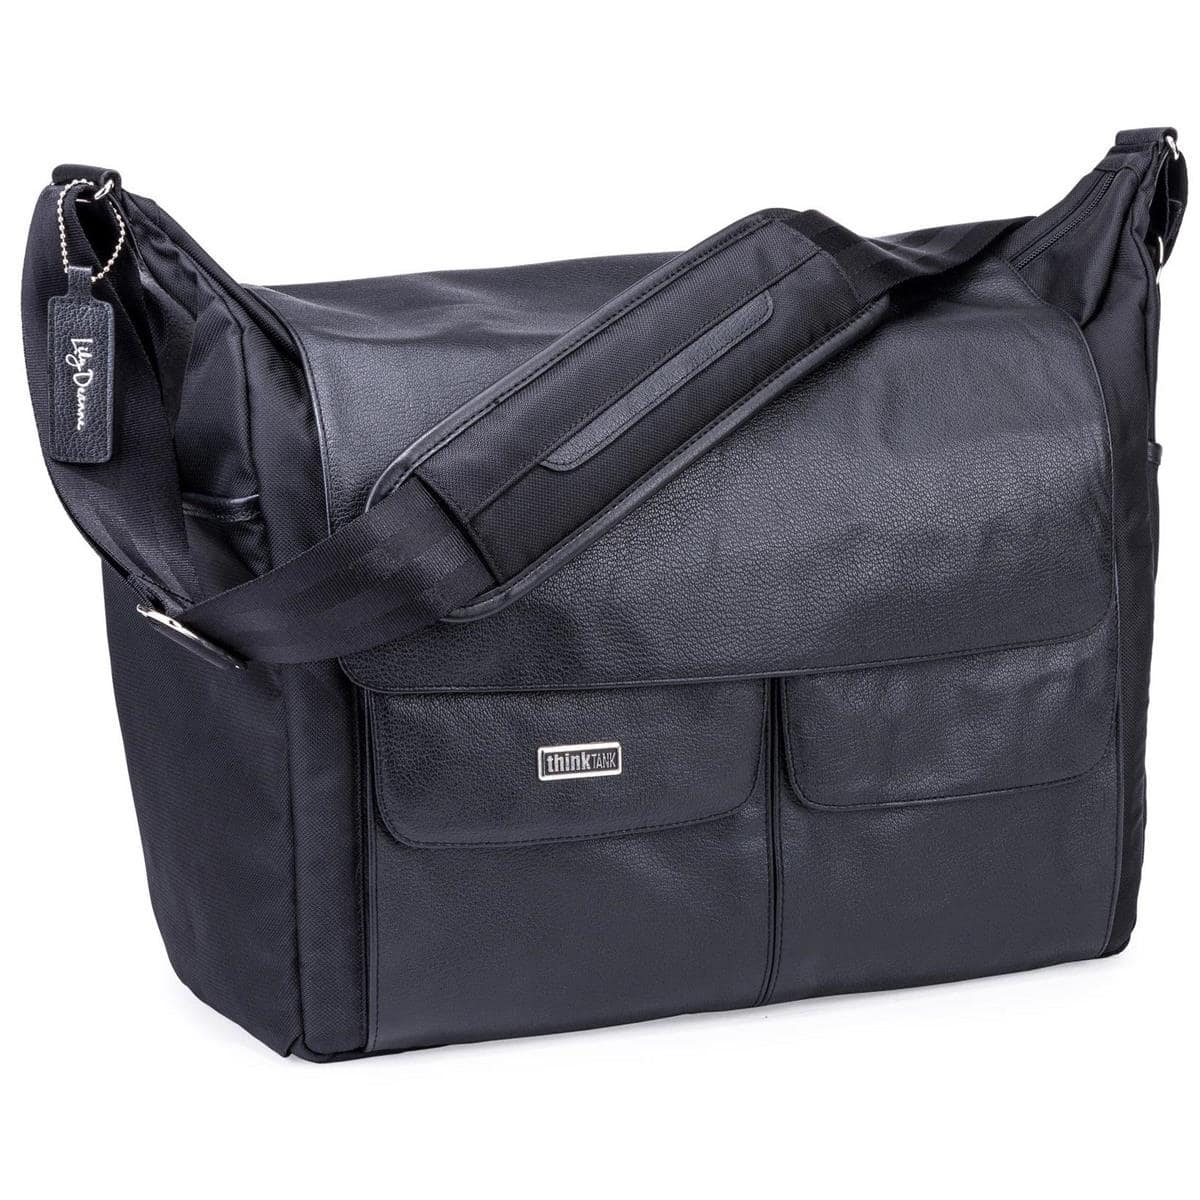 Think Tank Photo Lily Deanne Tutto Premium-Quality Camera Bag $99.99 (Free Shipping)